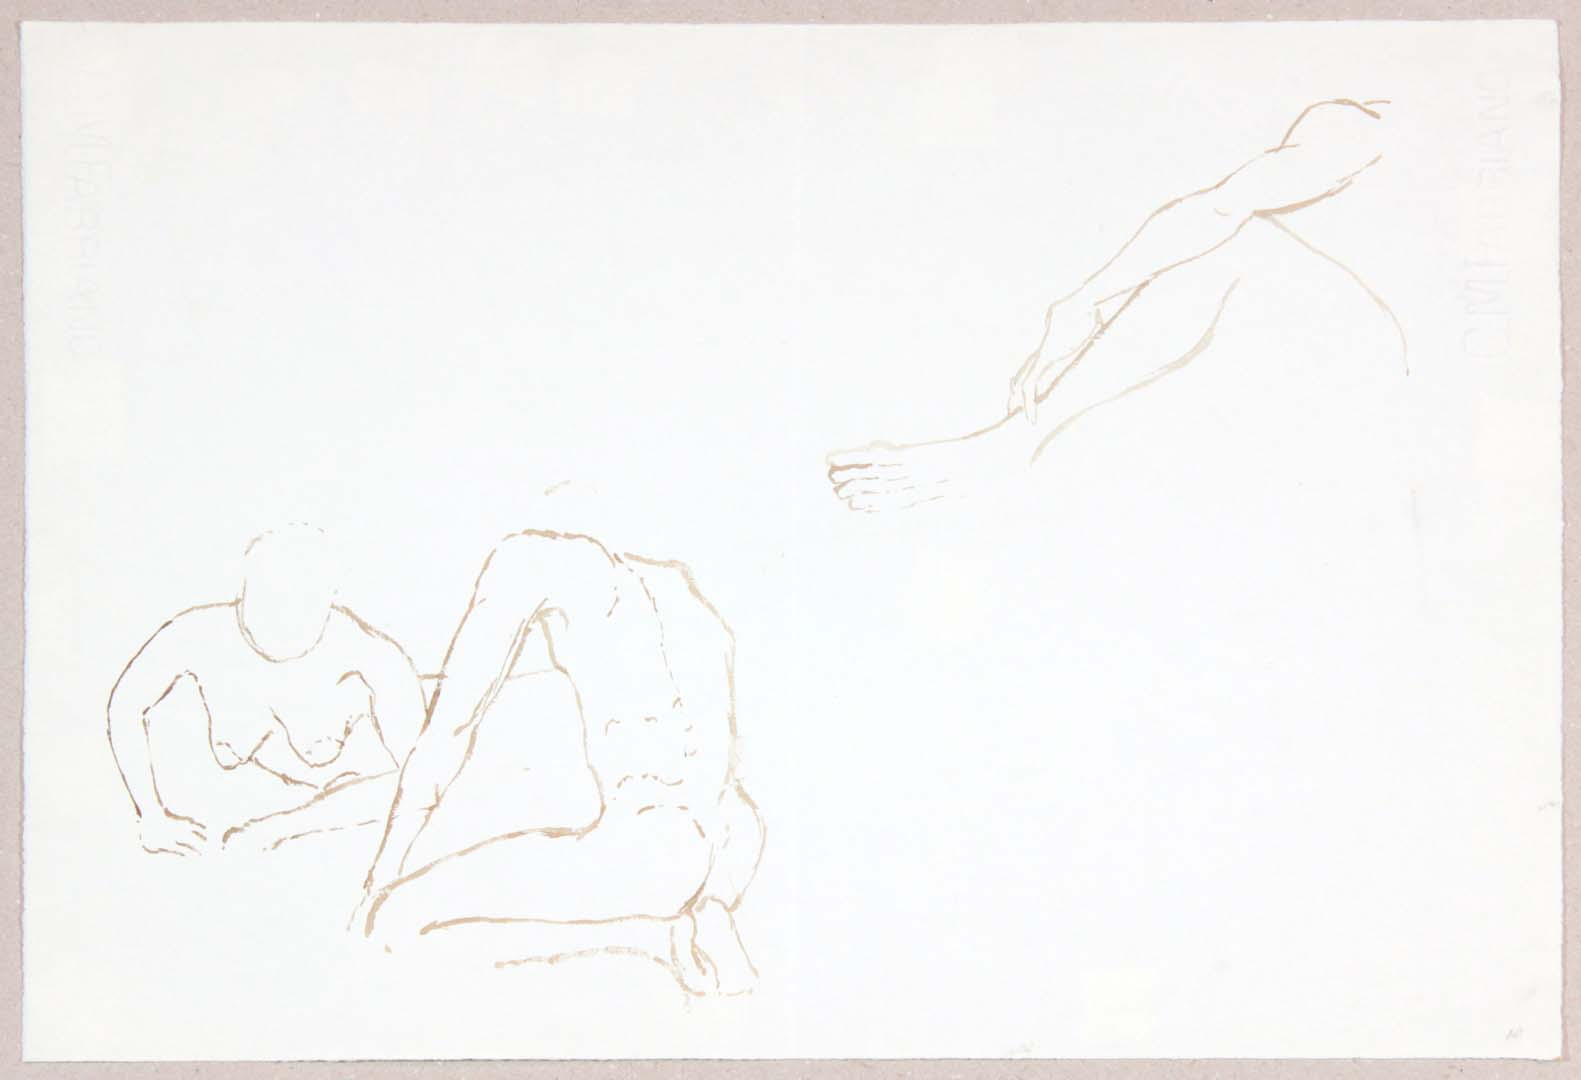 """Two Models on Floor and Leg and Arm Ink 13"""" x 18.75"""""""